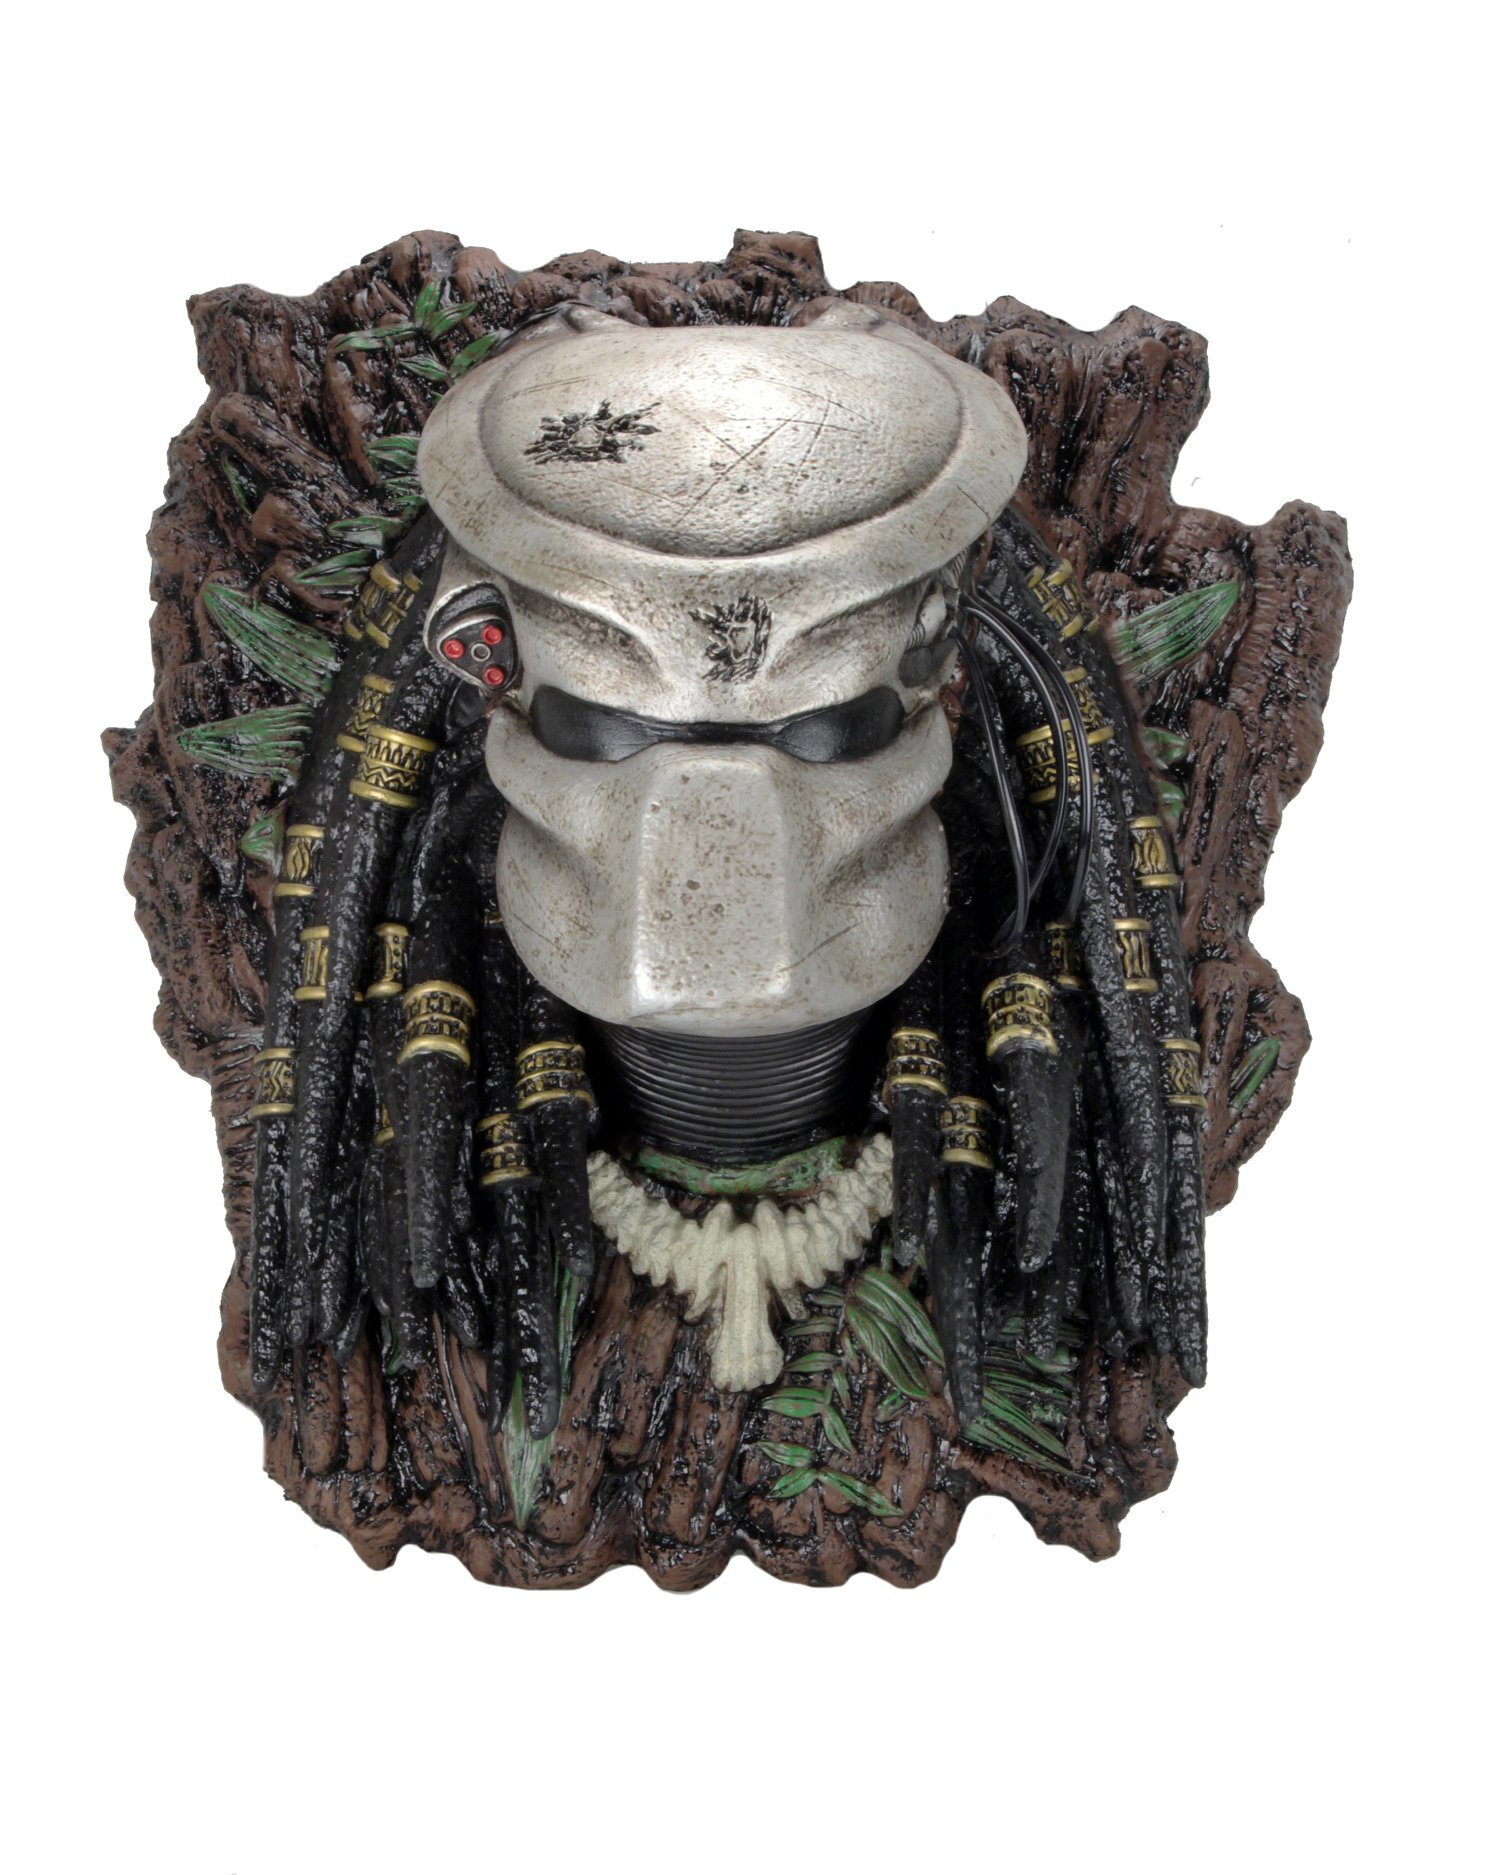 NECA Toys Predator & Alien Xenomorph Wall-Mounted Bust Available Now